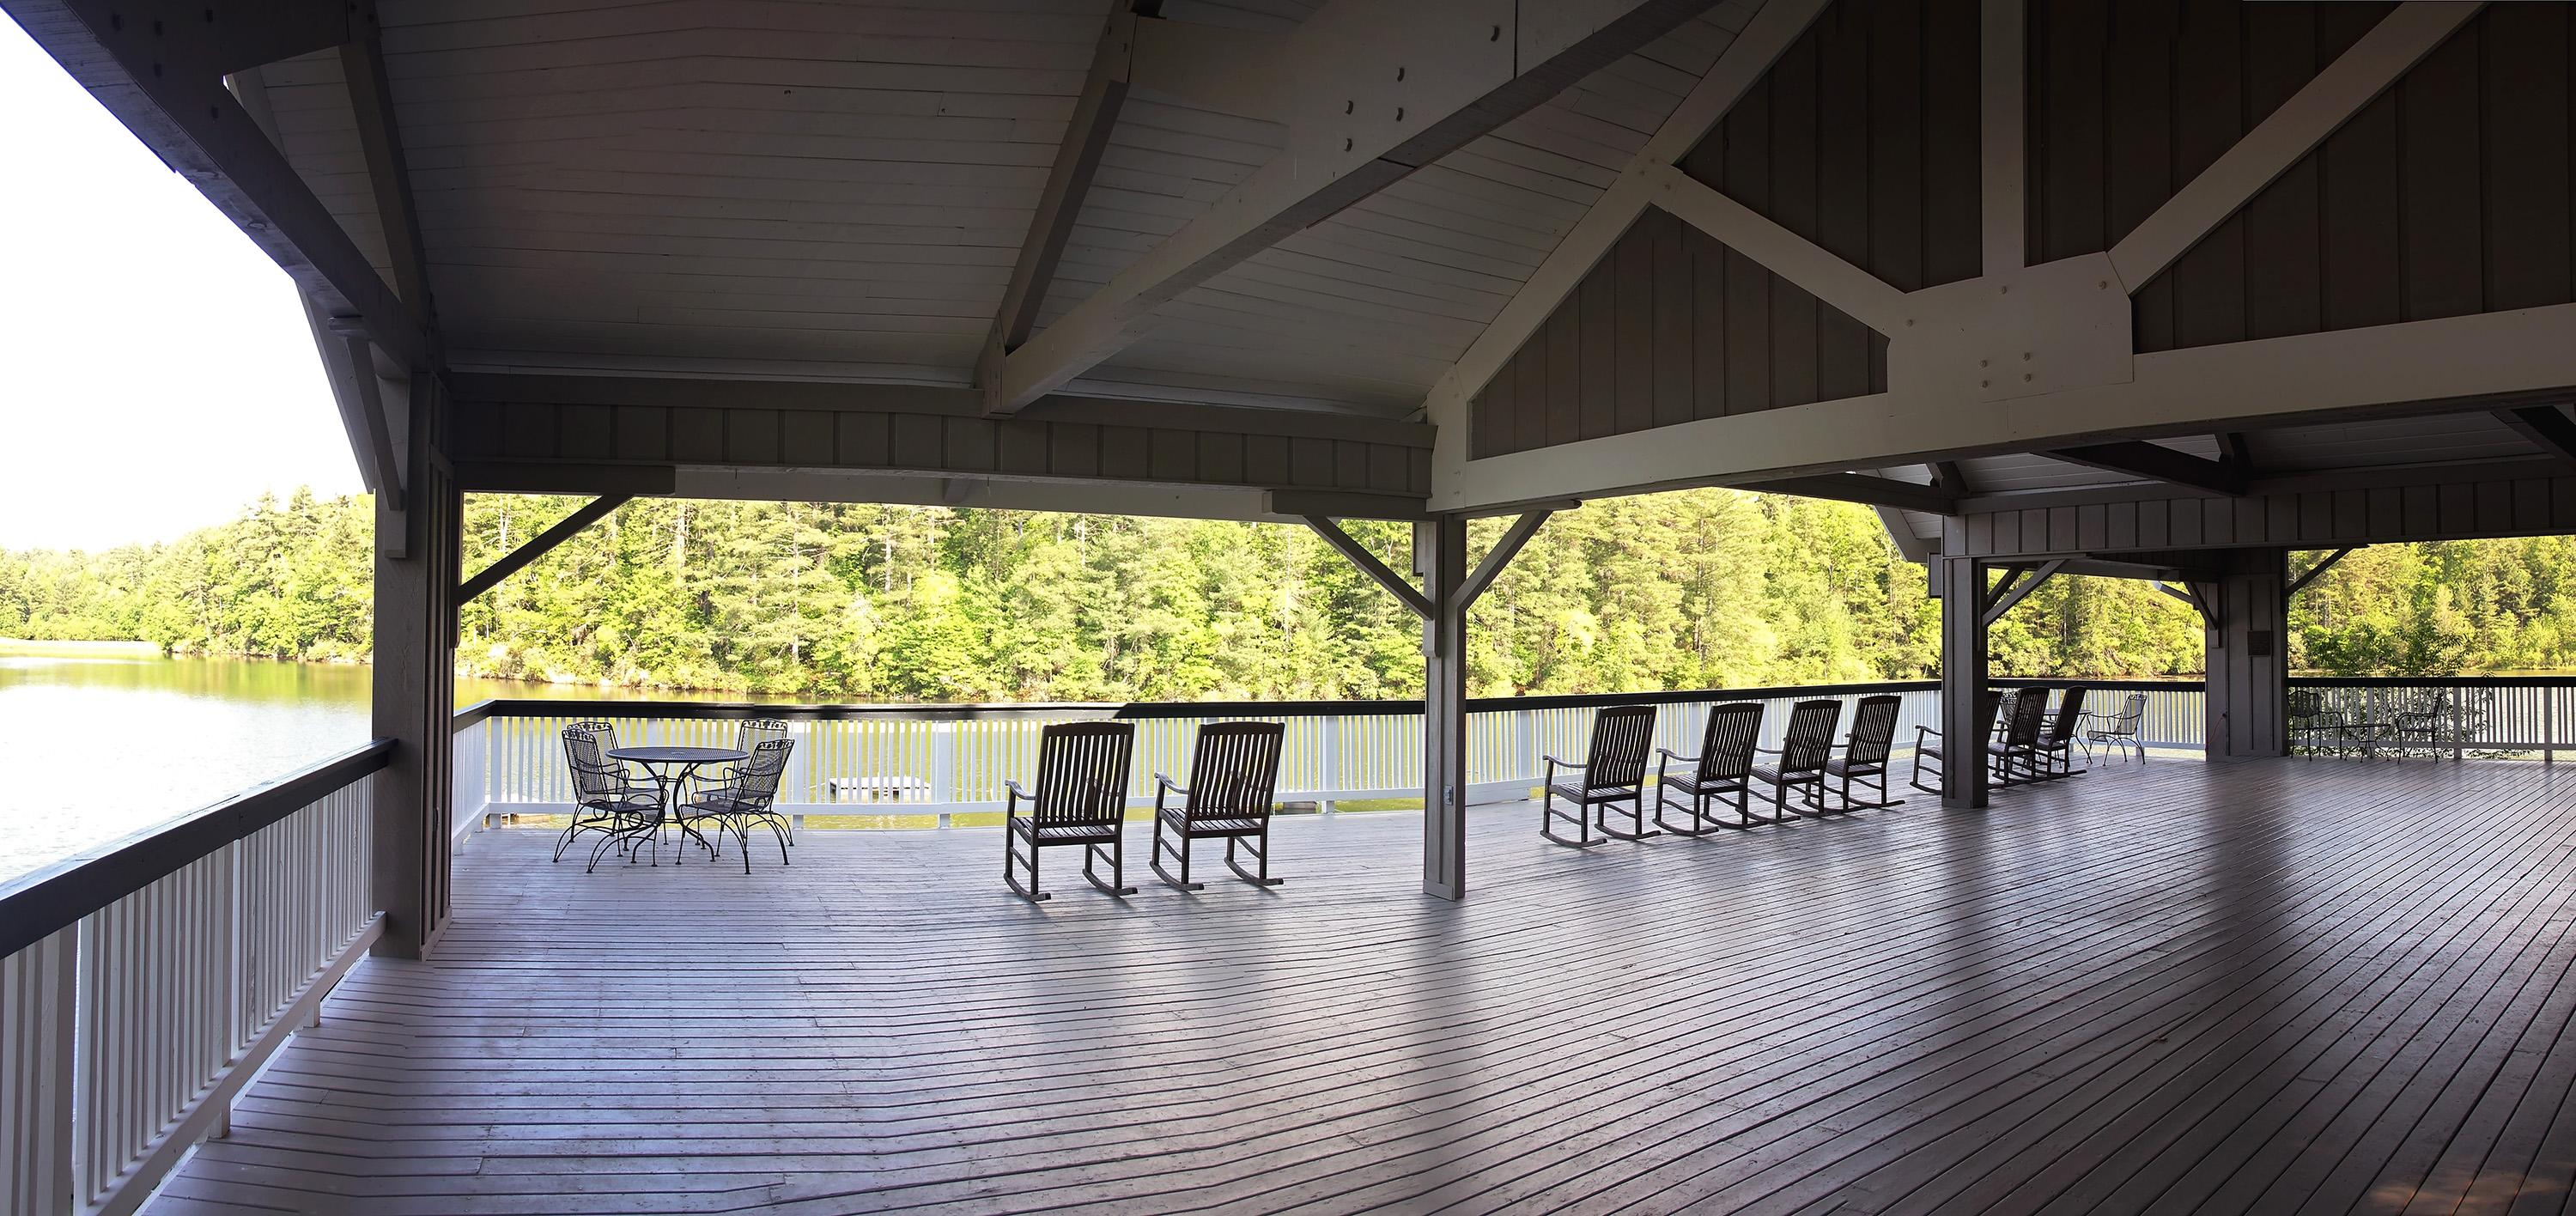 "A view of the Cuningham-Nevious Pavilion at the Kanuga Conference and Retreat Center in May 2017.  Kanuga was used as a filming location for ABC's remake of ""Dirty Dancing"" in 2016. The mambo scene, as scene in the movie's trailer, was filmed at the pavilion. (Photo credit: WLOS Staff)"